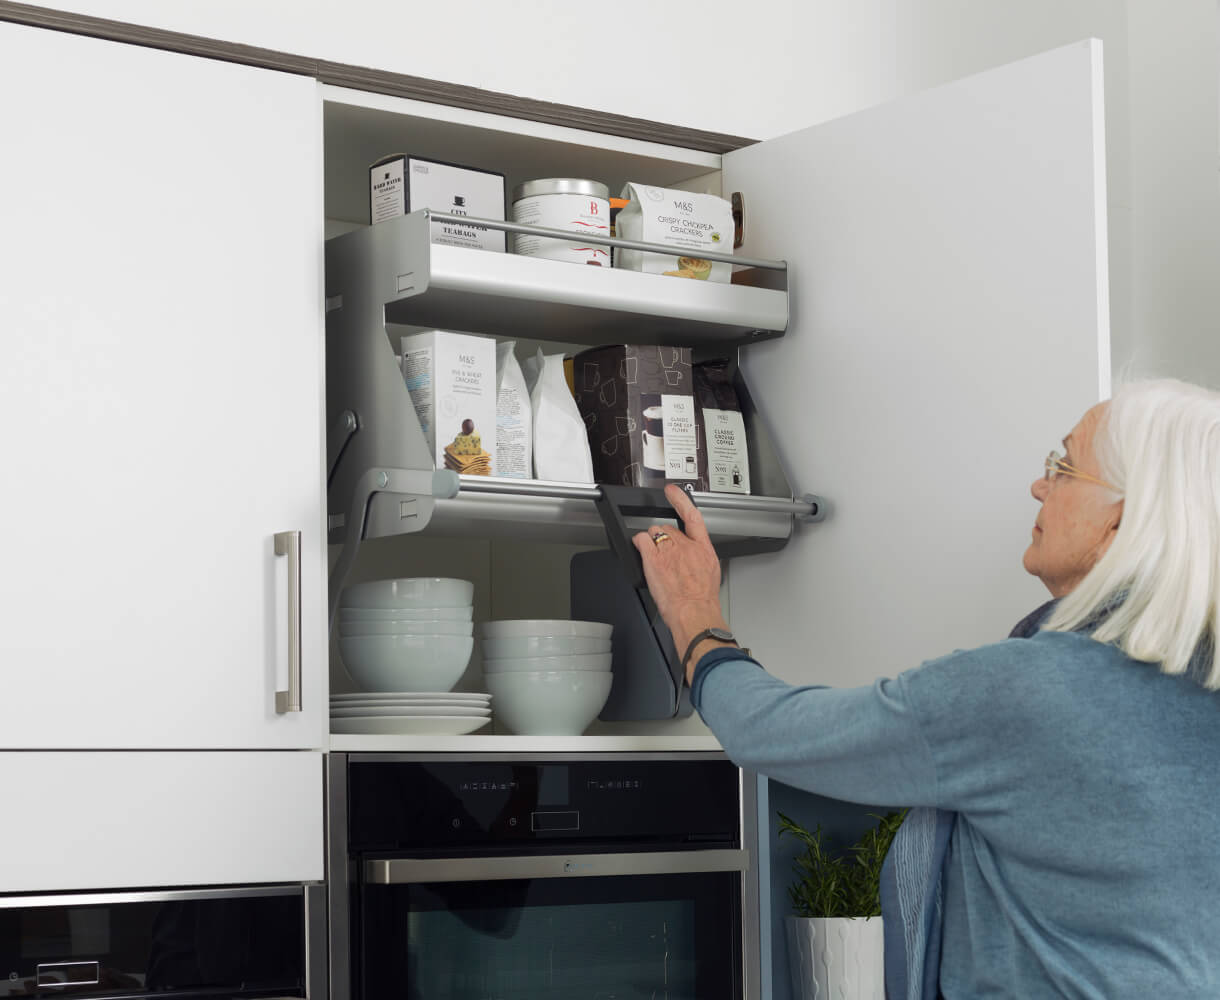 Older lady pulling down drop-down kitchen cupboard baskets from a cabinet above her